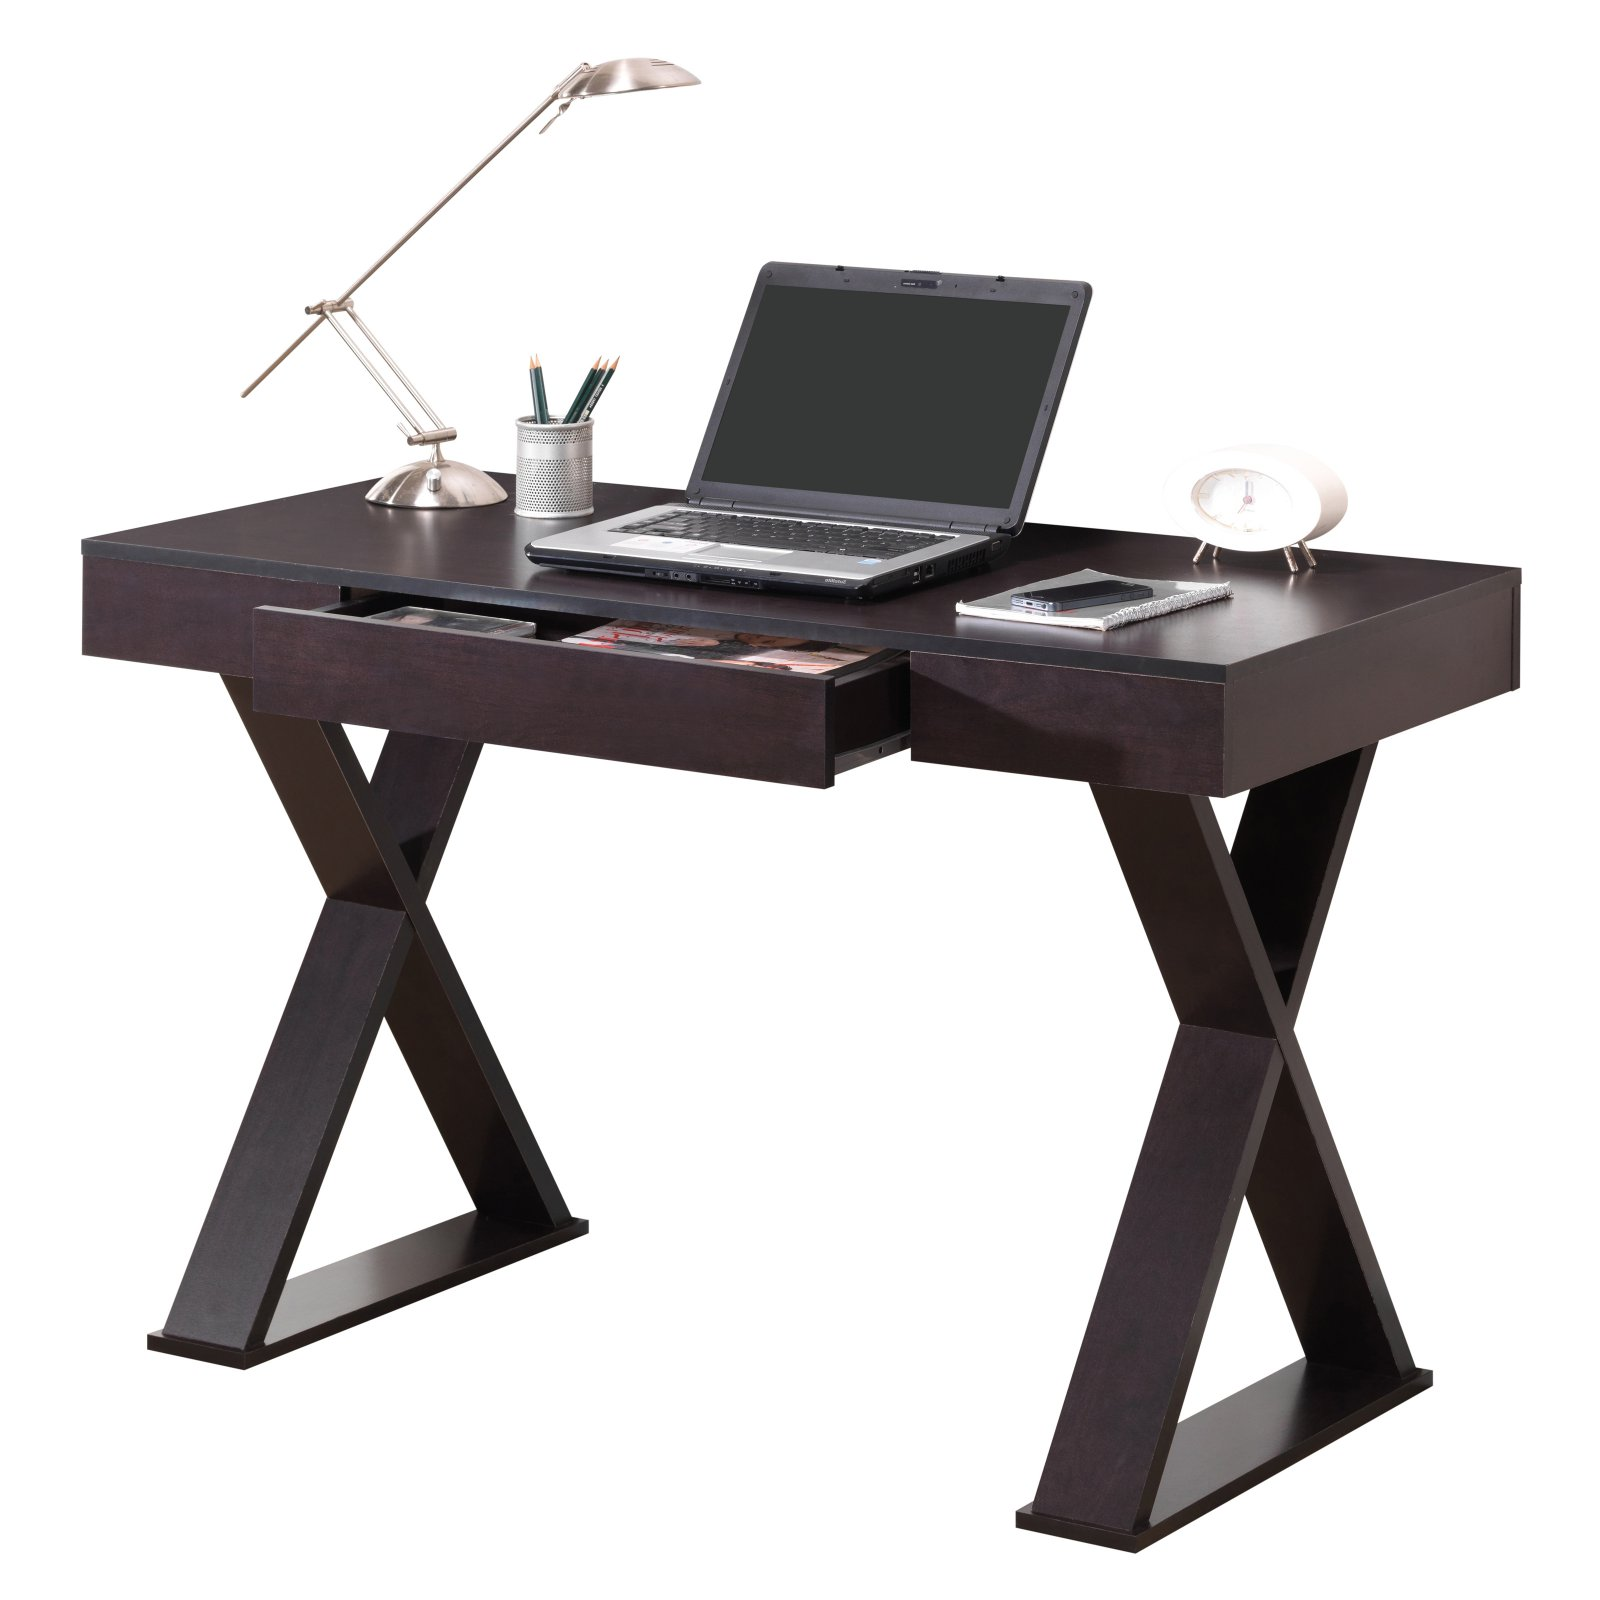 Techni Mobili Trendy Desk with Drawer